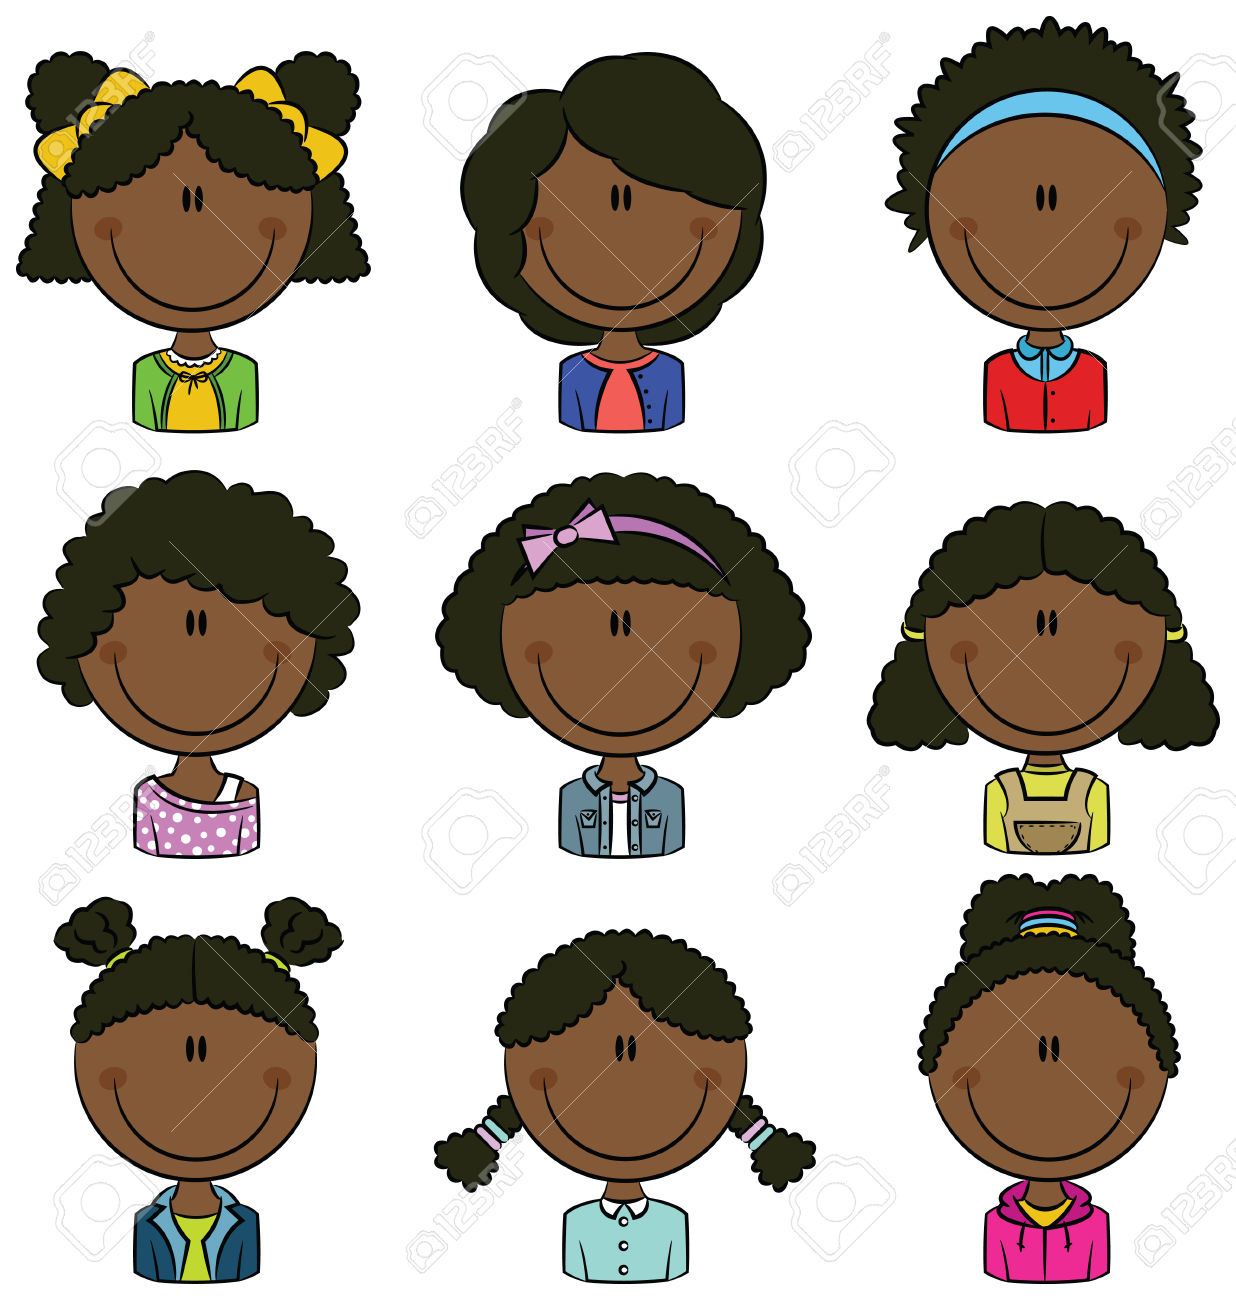 Africanamerican clipart svg transparent african american girls: | Clipart Panda - Free Clipart Images svg transparent